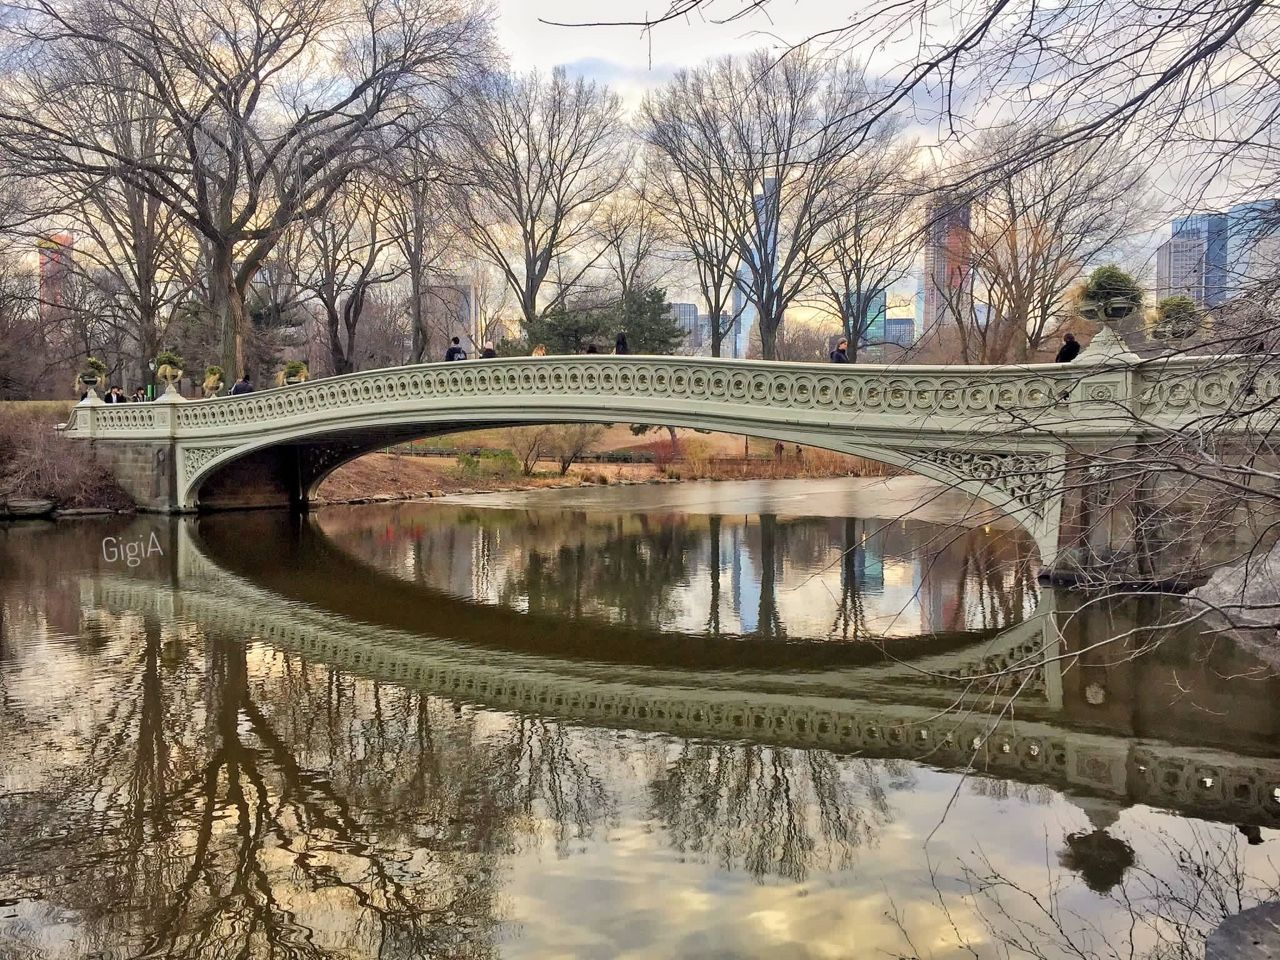 Bow Bridge Central Park by Gigi Altarejos @gigi_nyc | via newyorkcityfeelings.com - The Best Photos and Videos of New York City including the Statue of Liberty Brooklyn Bridge Central Park Empire State Building Chrysler Building and other popular New York places and attractions.